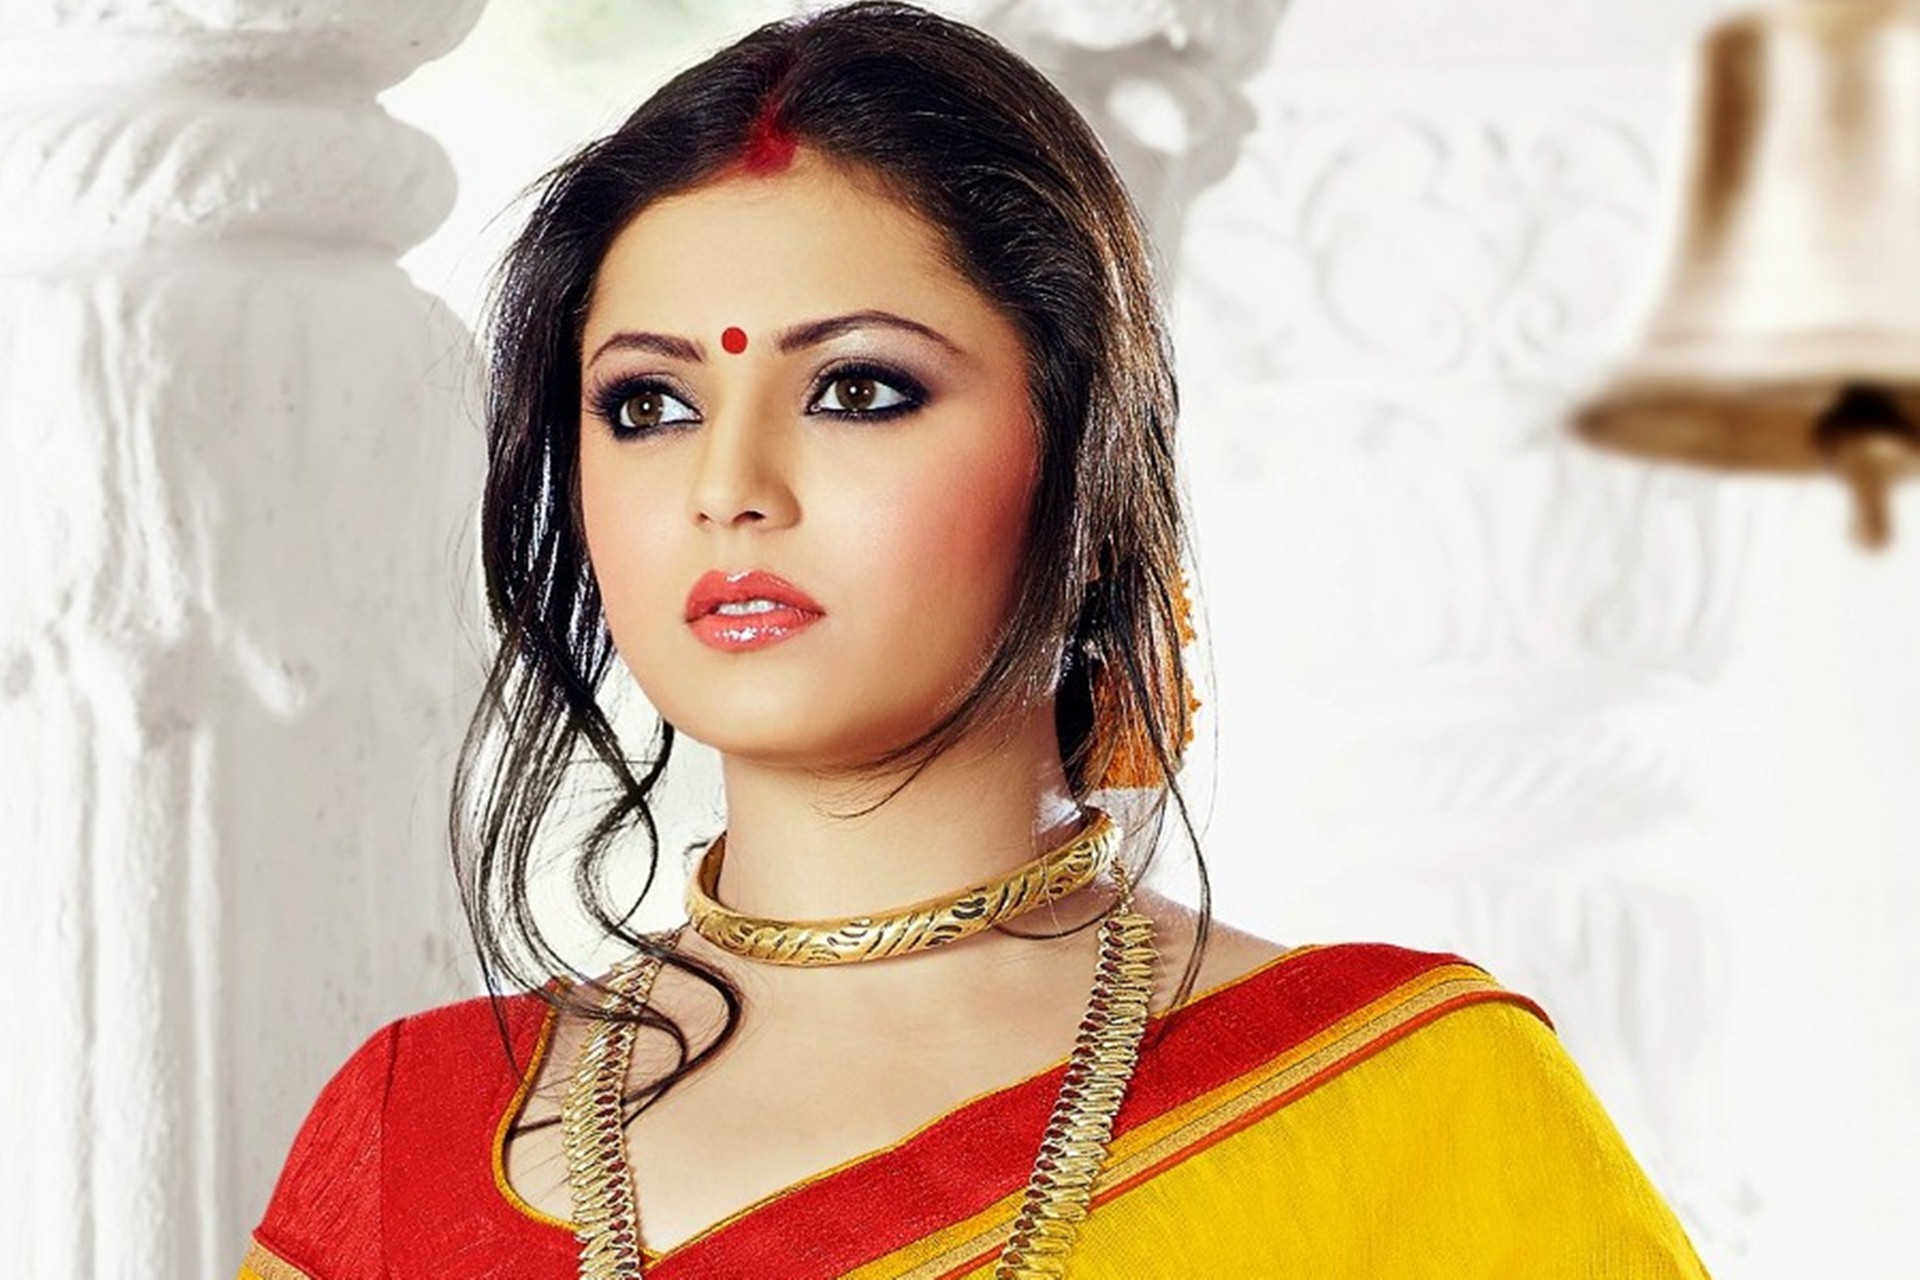 Beautiful Drashti Dhami Homely Look Deskop Free Mobile Background Pictures Hd